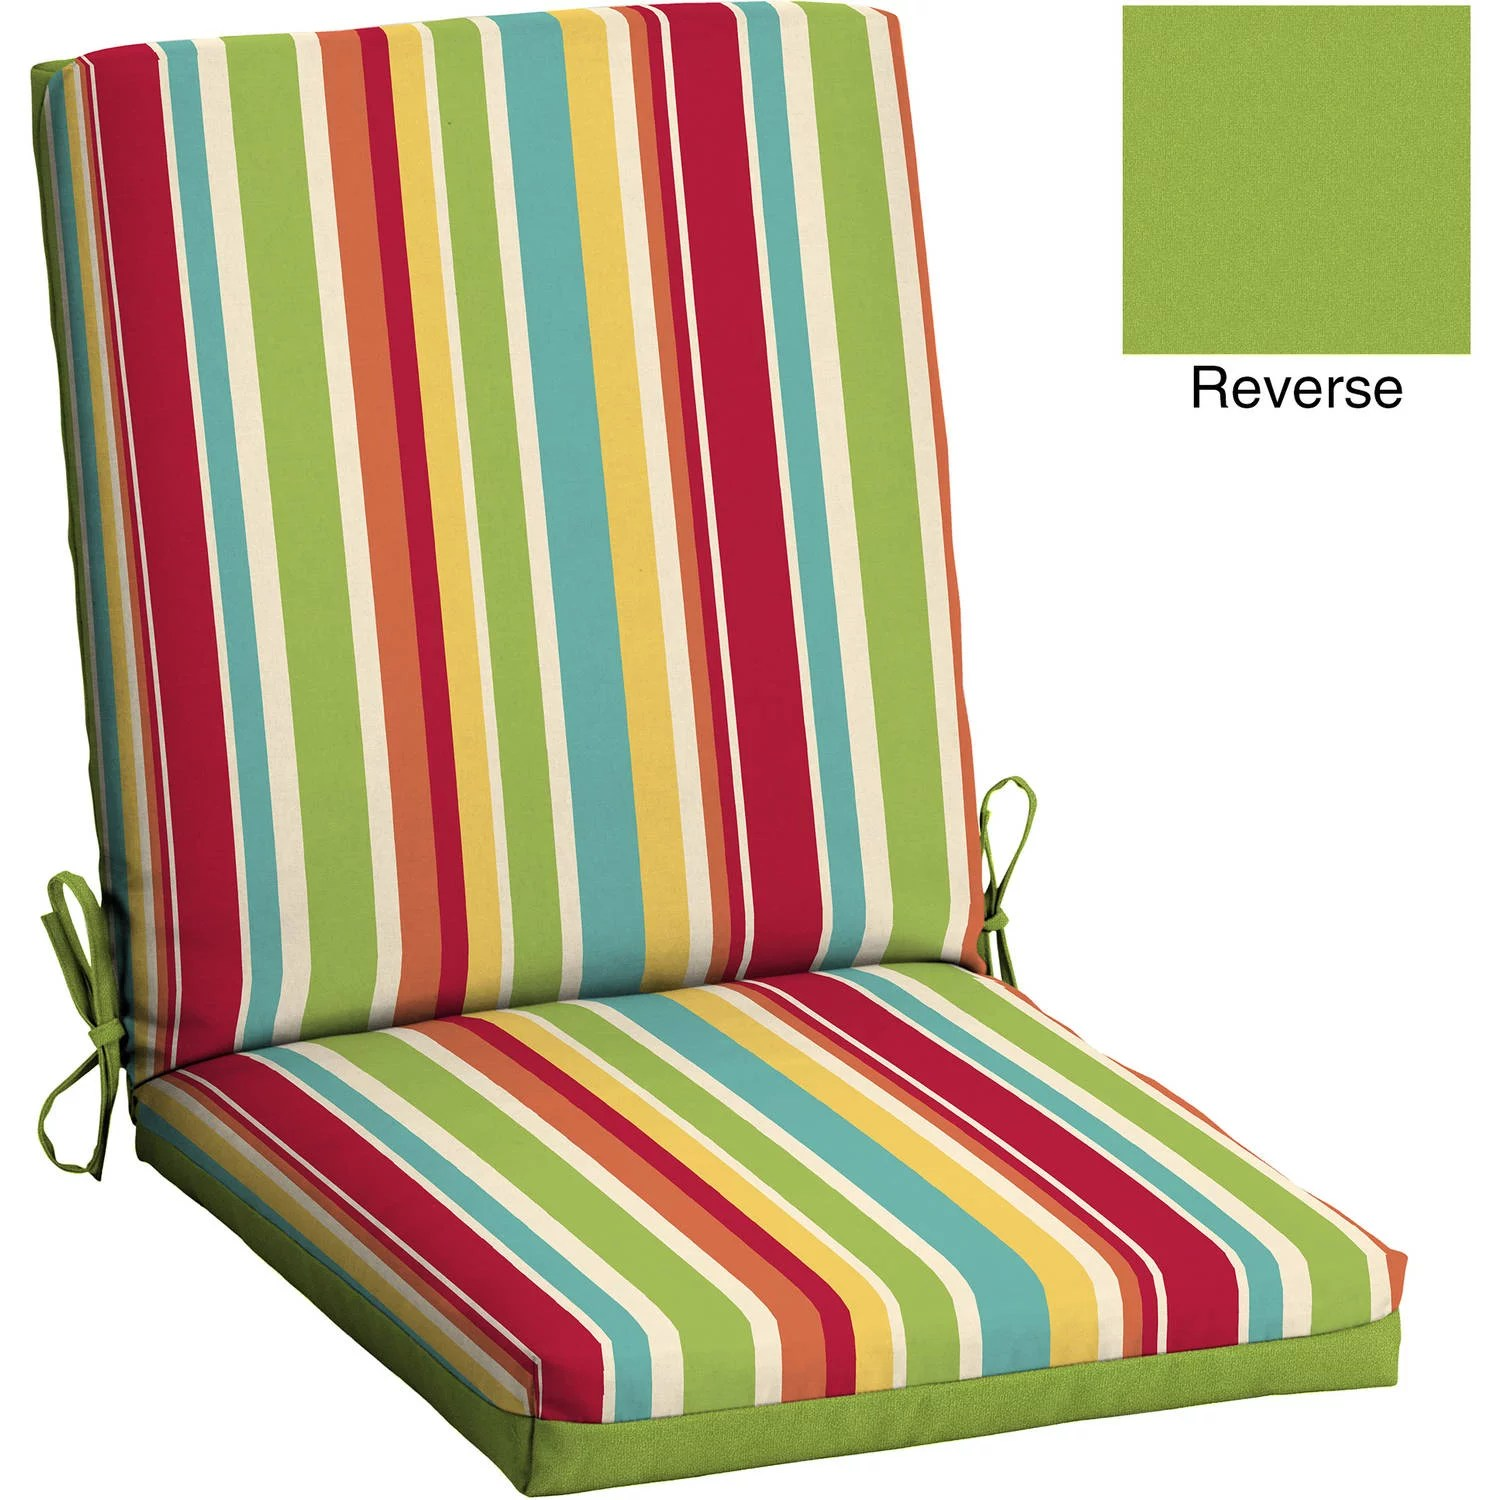 Discount Patio Chair Mainstays Outdoor Patio Bench Cushion 17